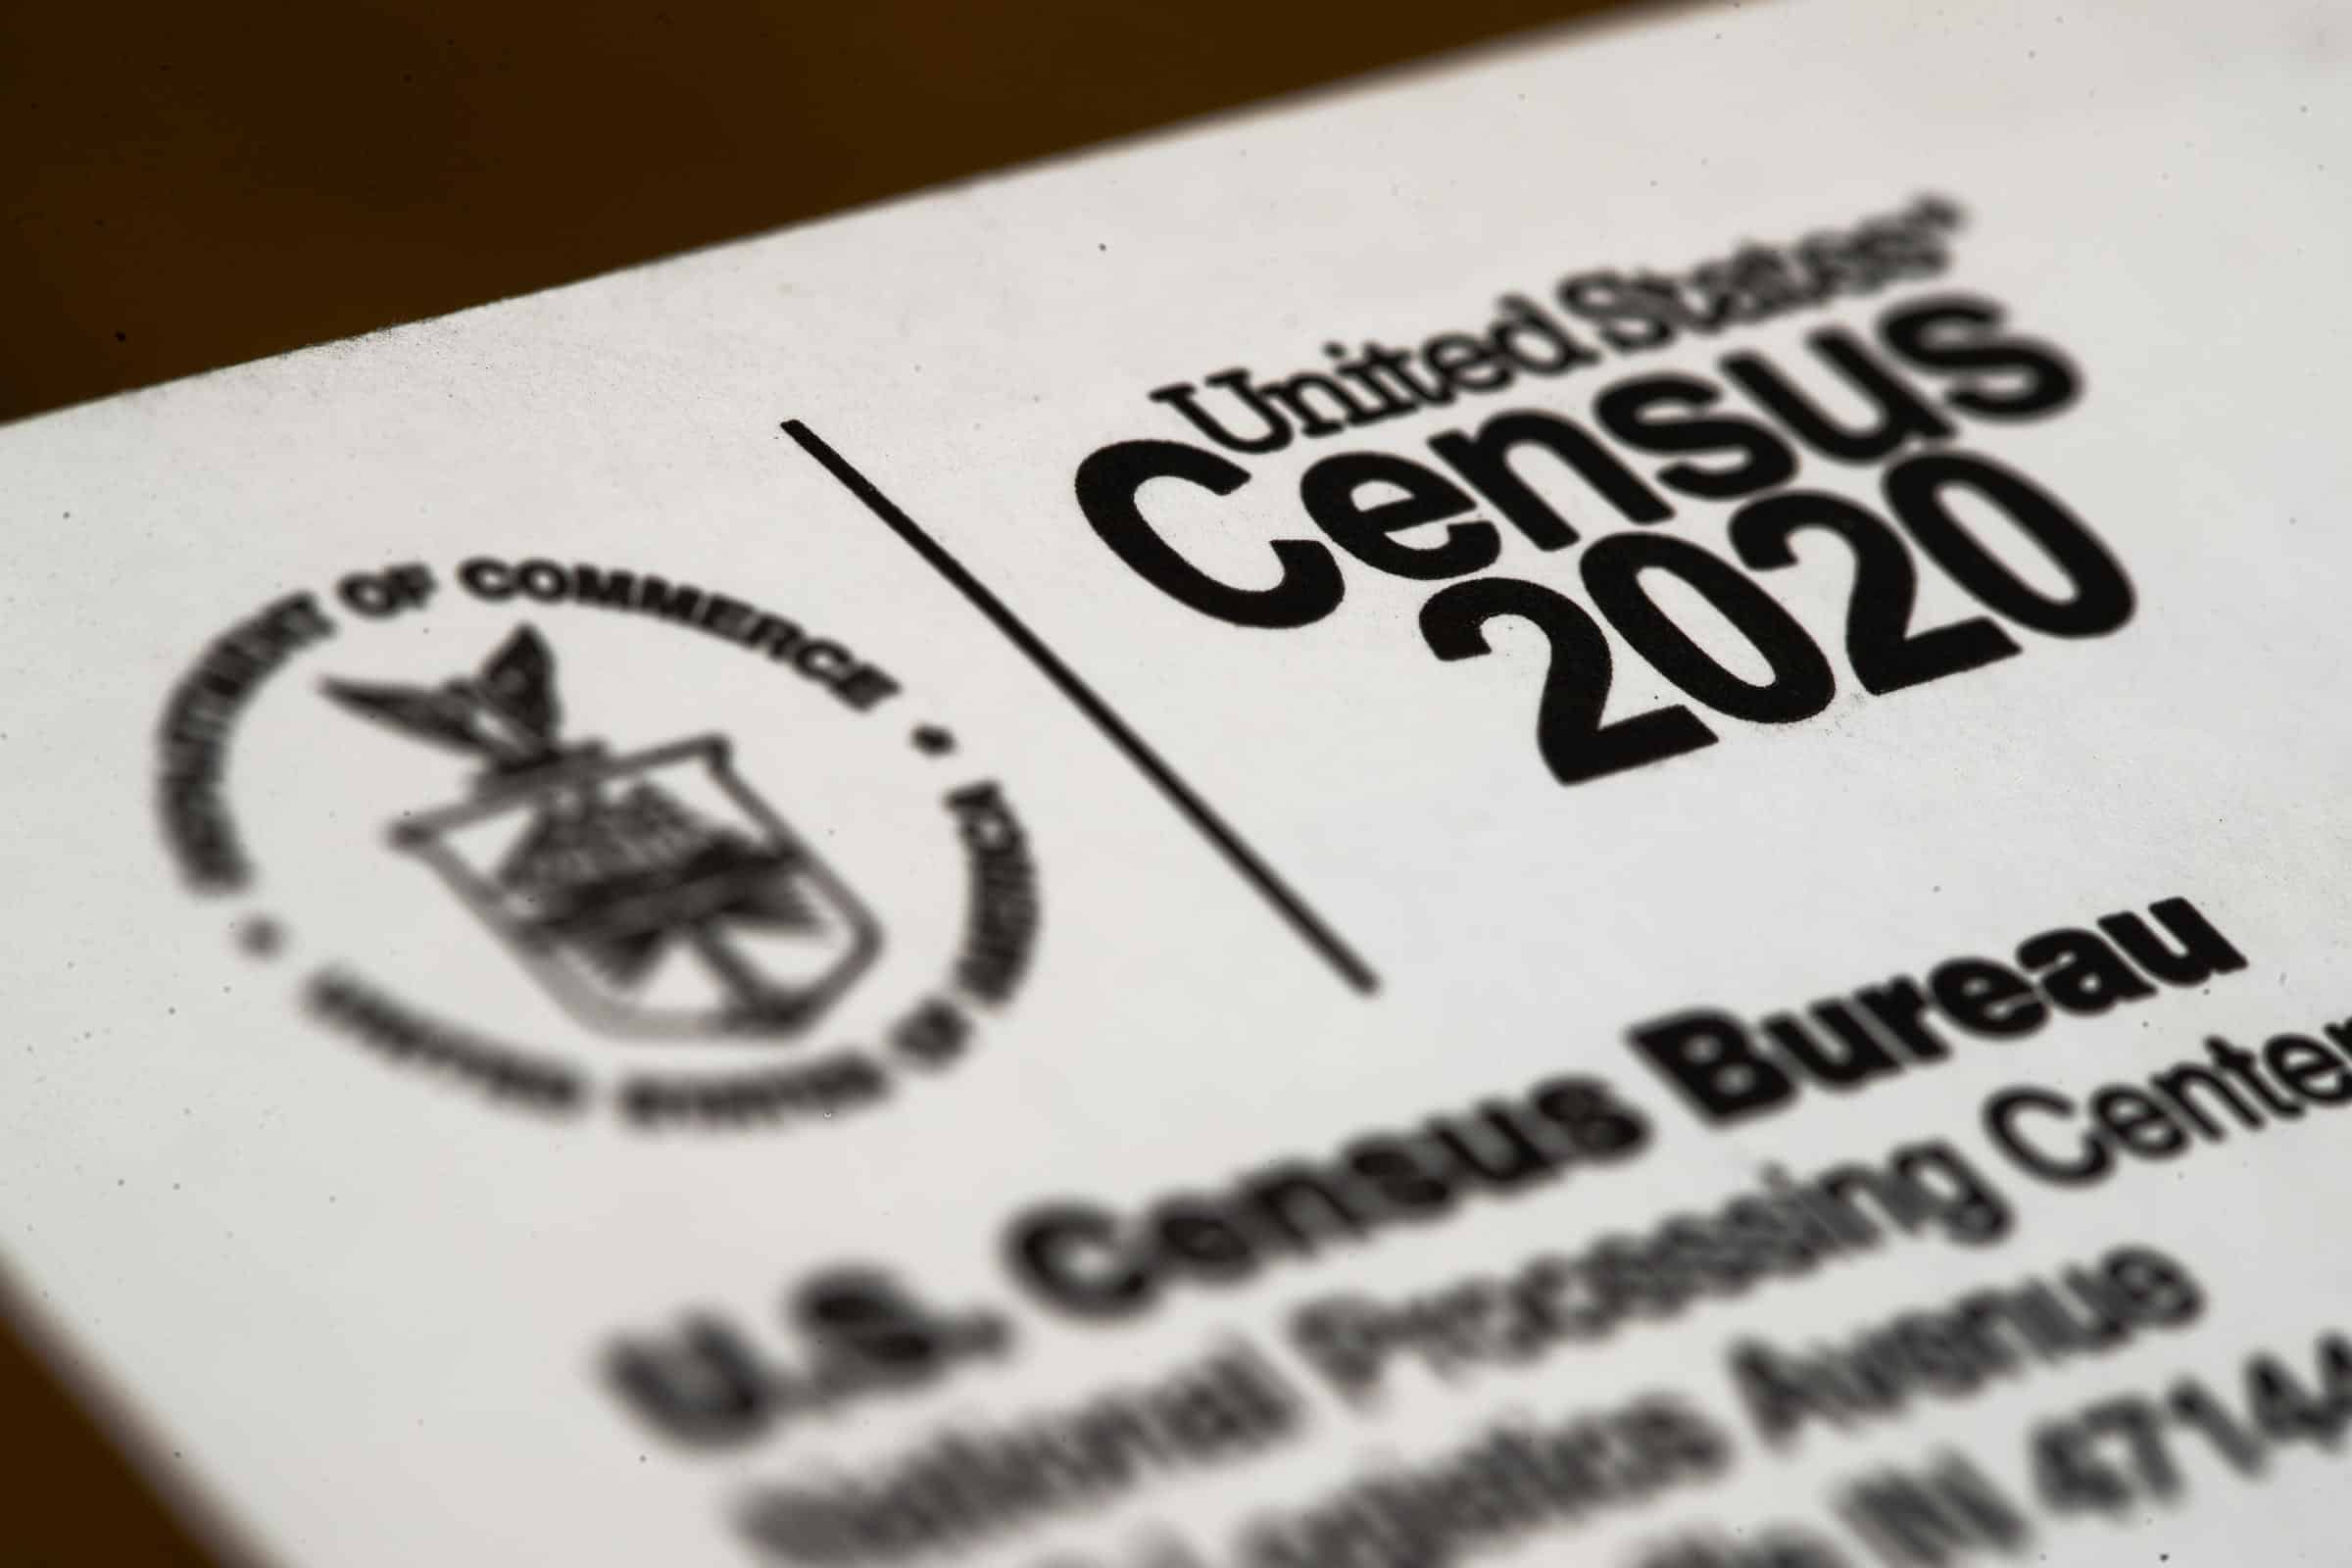 Census 2020: Windham, Litchfield, New Haven failing response rates